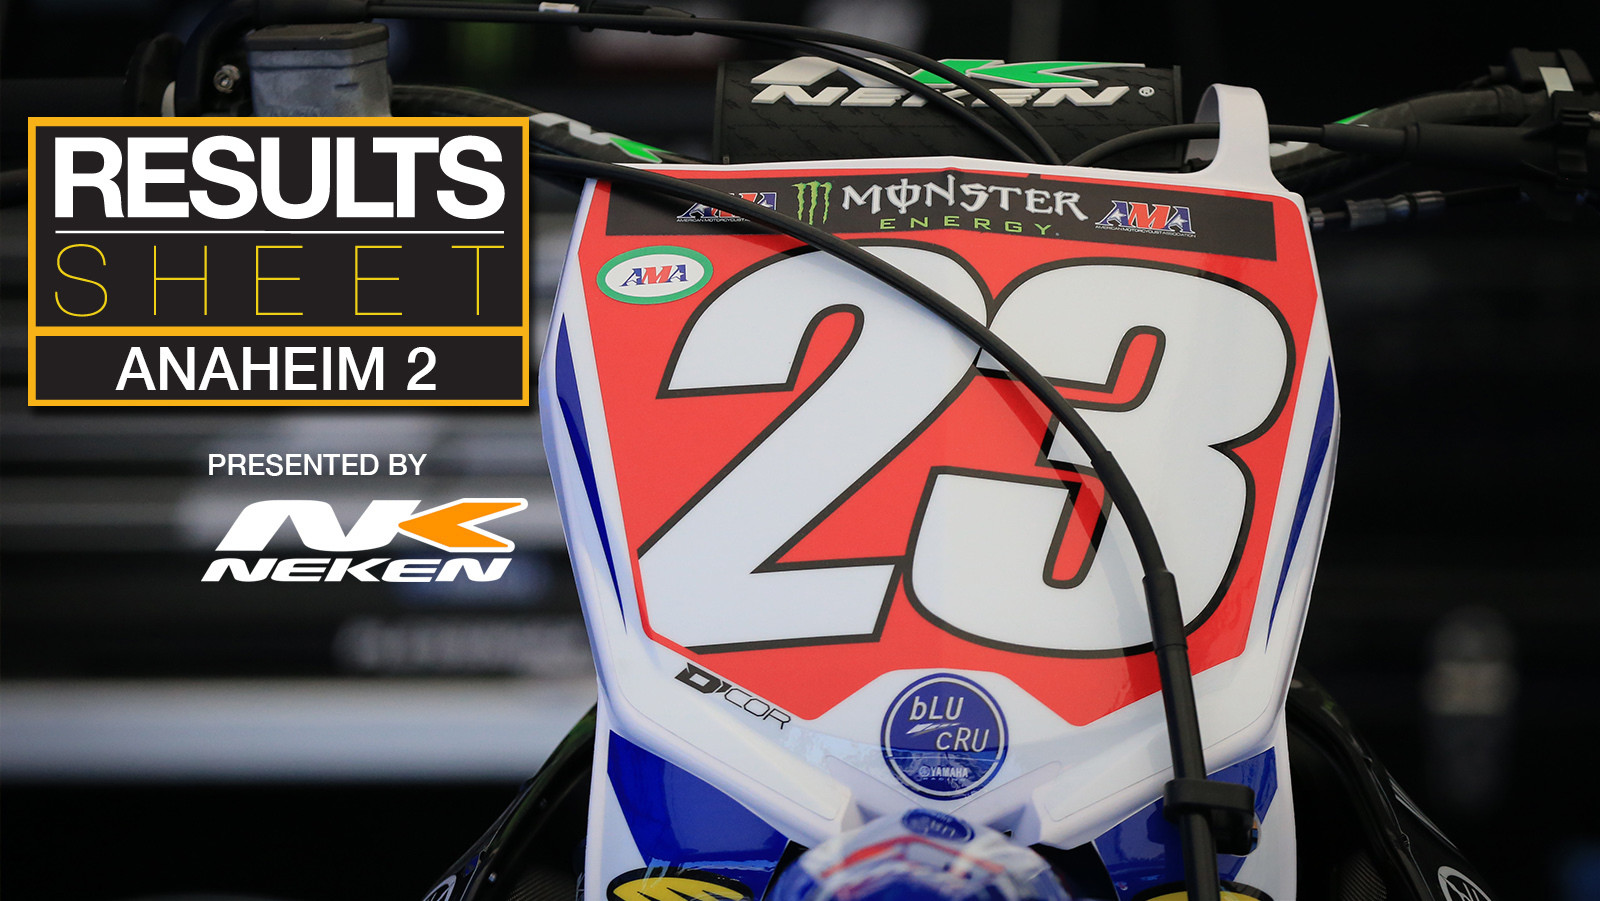 Results Sheet: 2018 Anaheim 2 Supercross